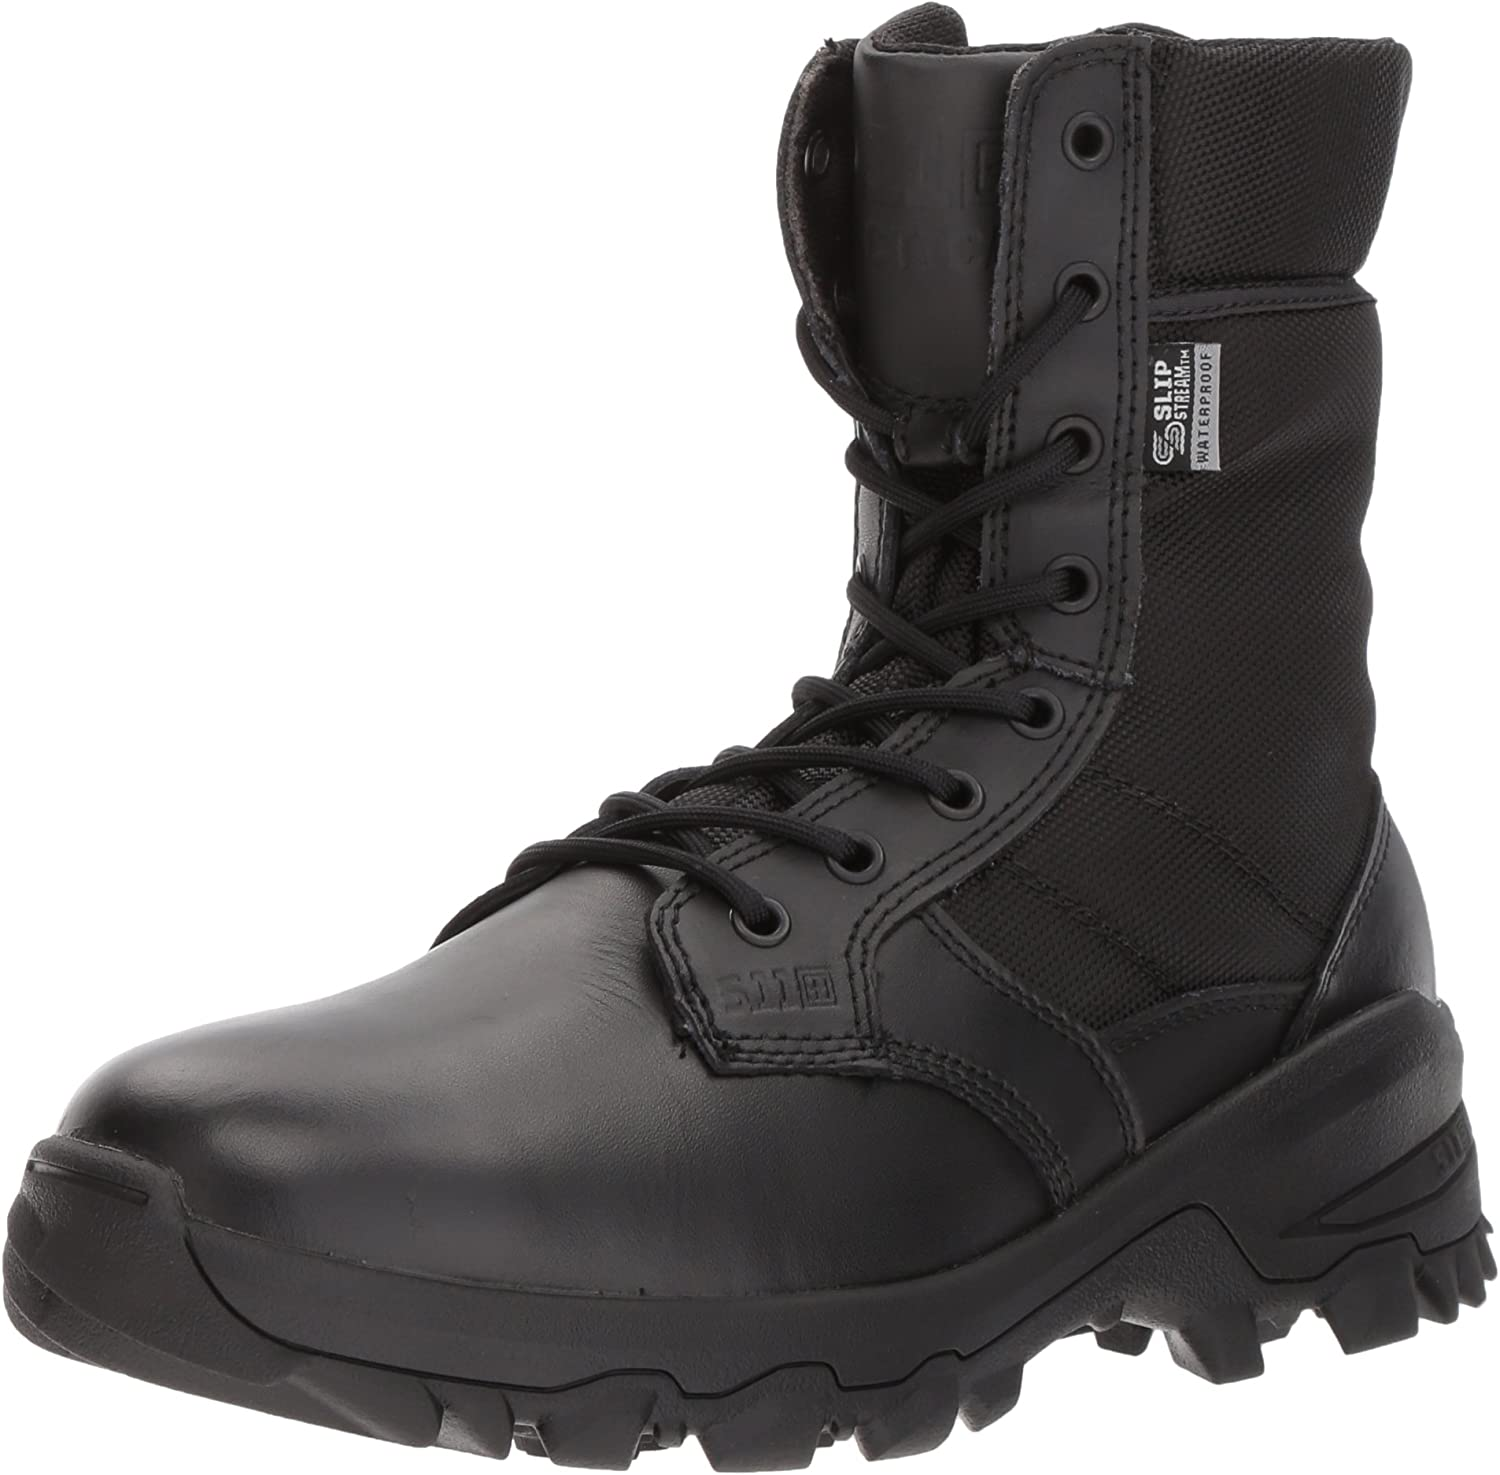 5.11 Men's Speed 3.0 Waterproof Boot 9.5 Cheap bargain and Black Safety Fire Ranking TOP14